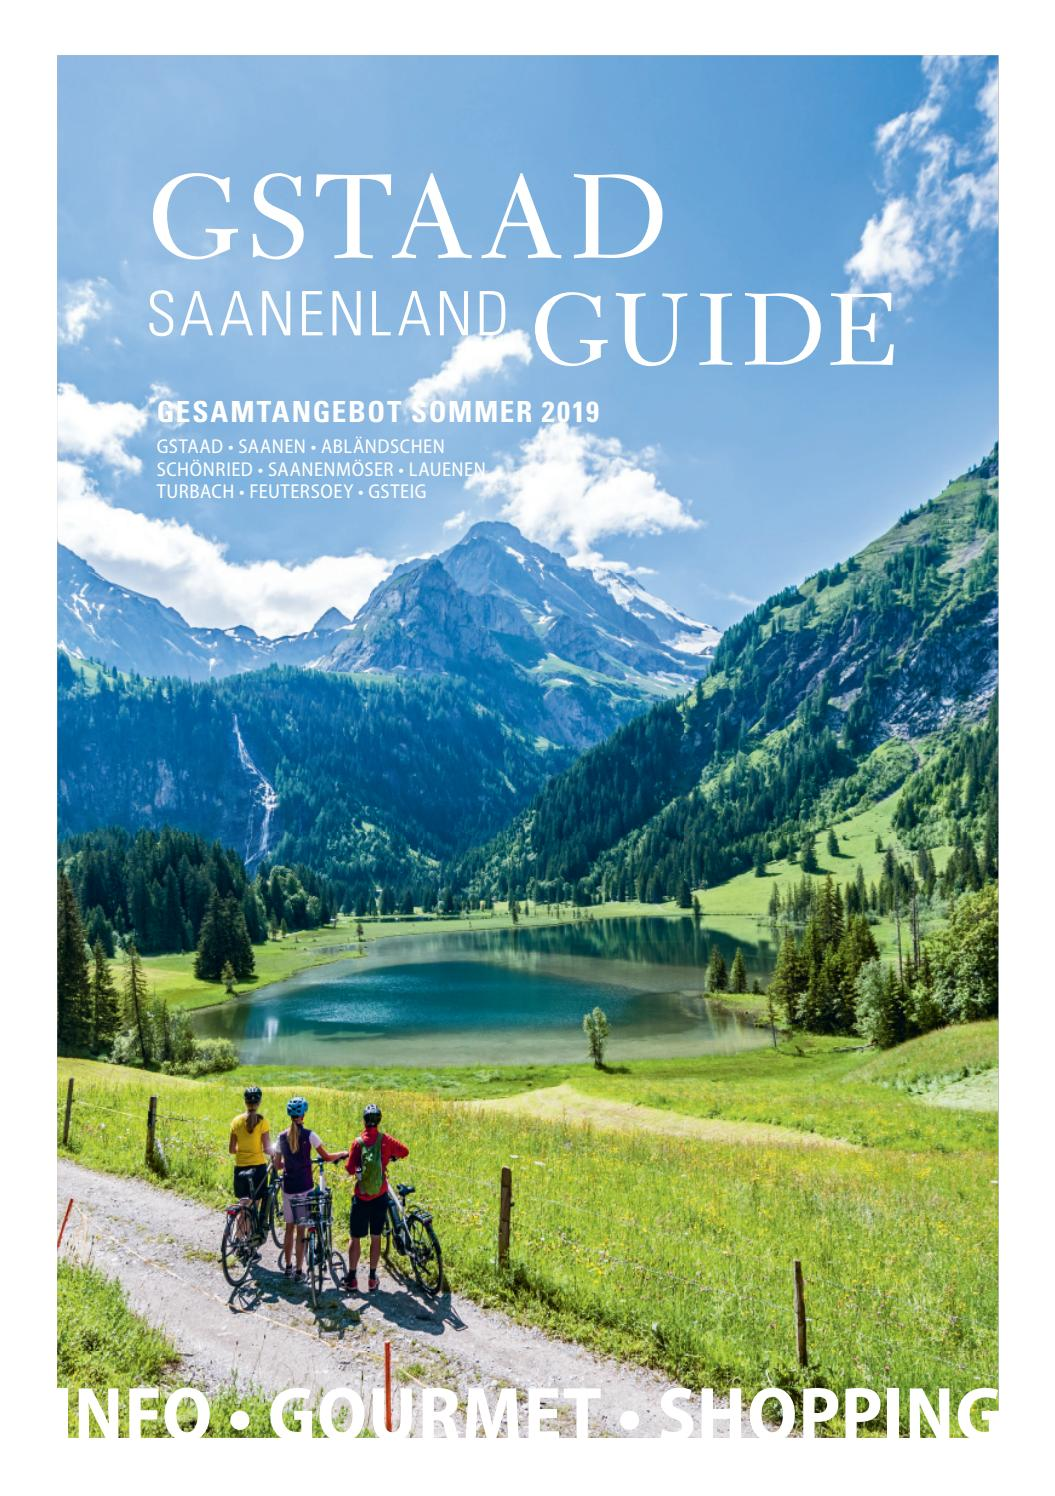 Gstaad Saanenland Guide Sommer 2019 by Müller Medien - issuu